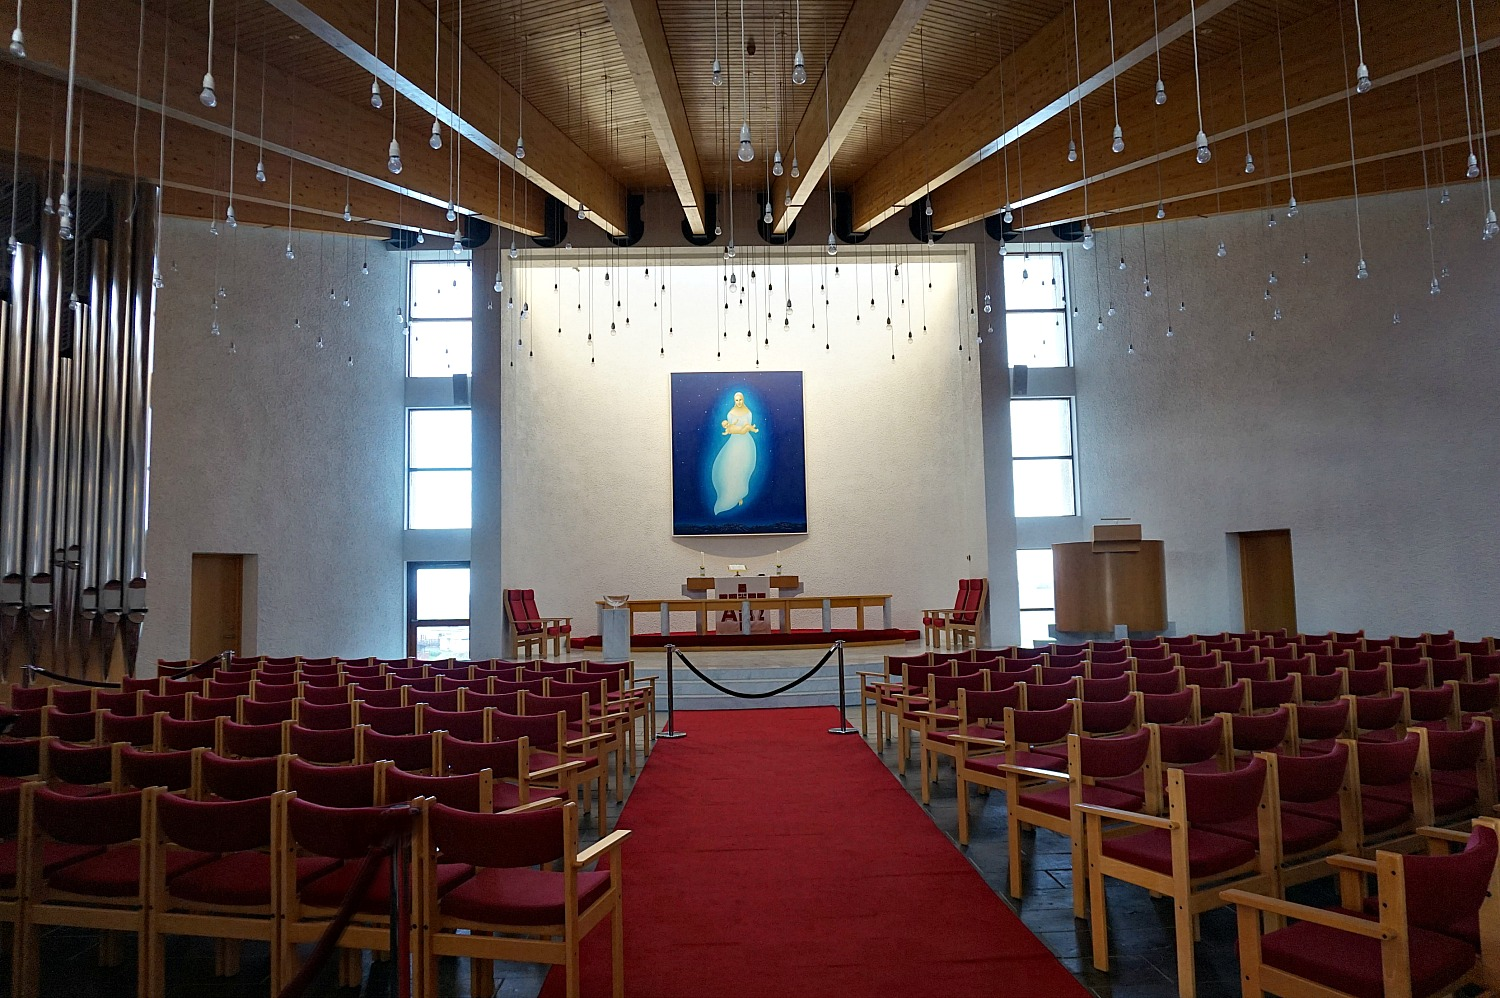 10 top reasons to visit Iceland. Simple but moving interior of a modern church in town of Stikkisholmur.